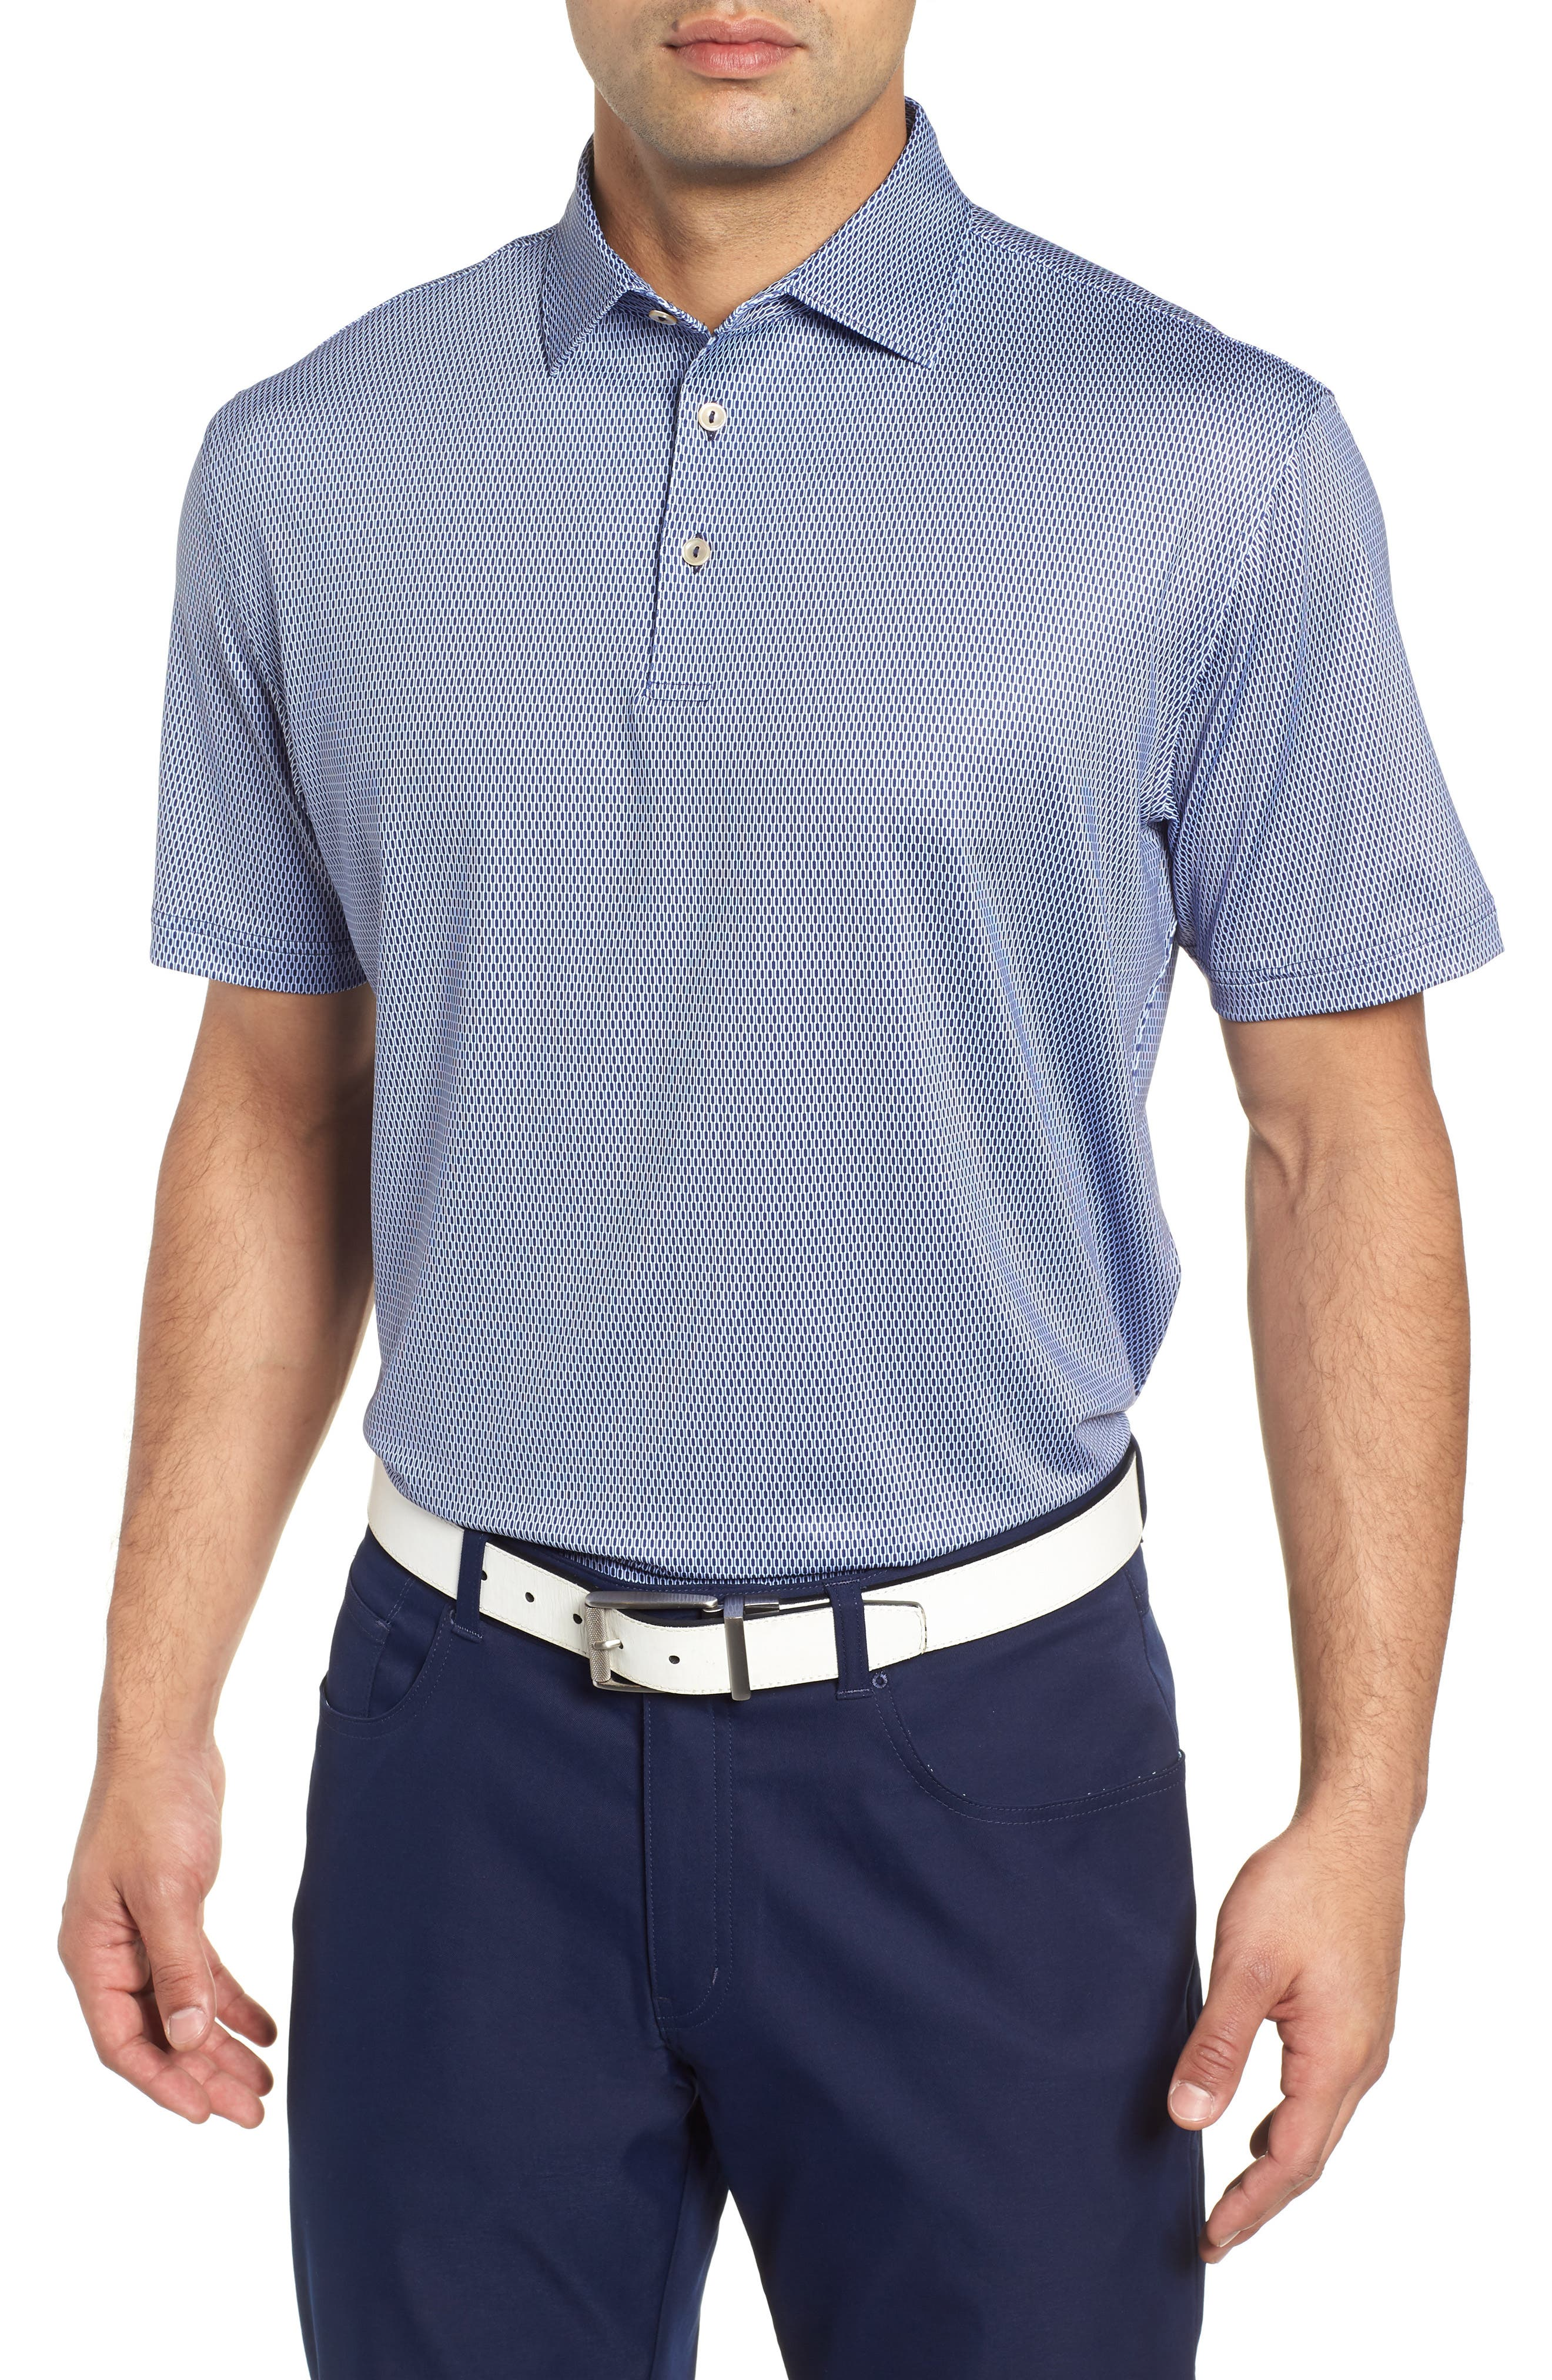 Latimer Classic Fit Links Print Golf Polo,                         Main,                         color, 410